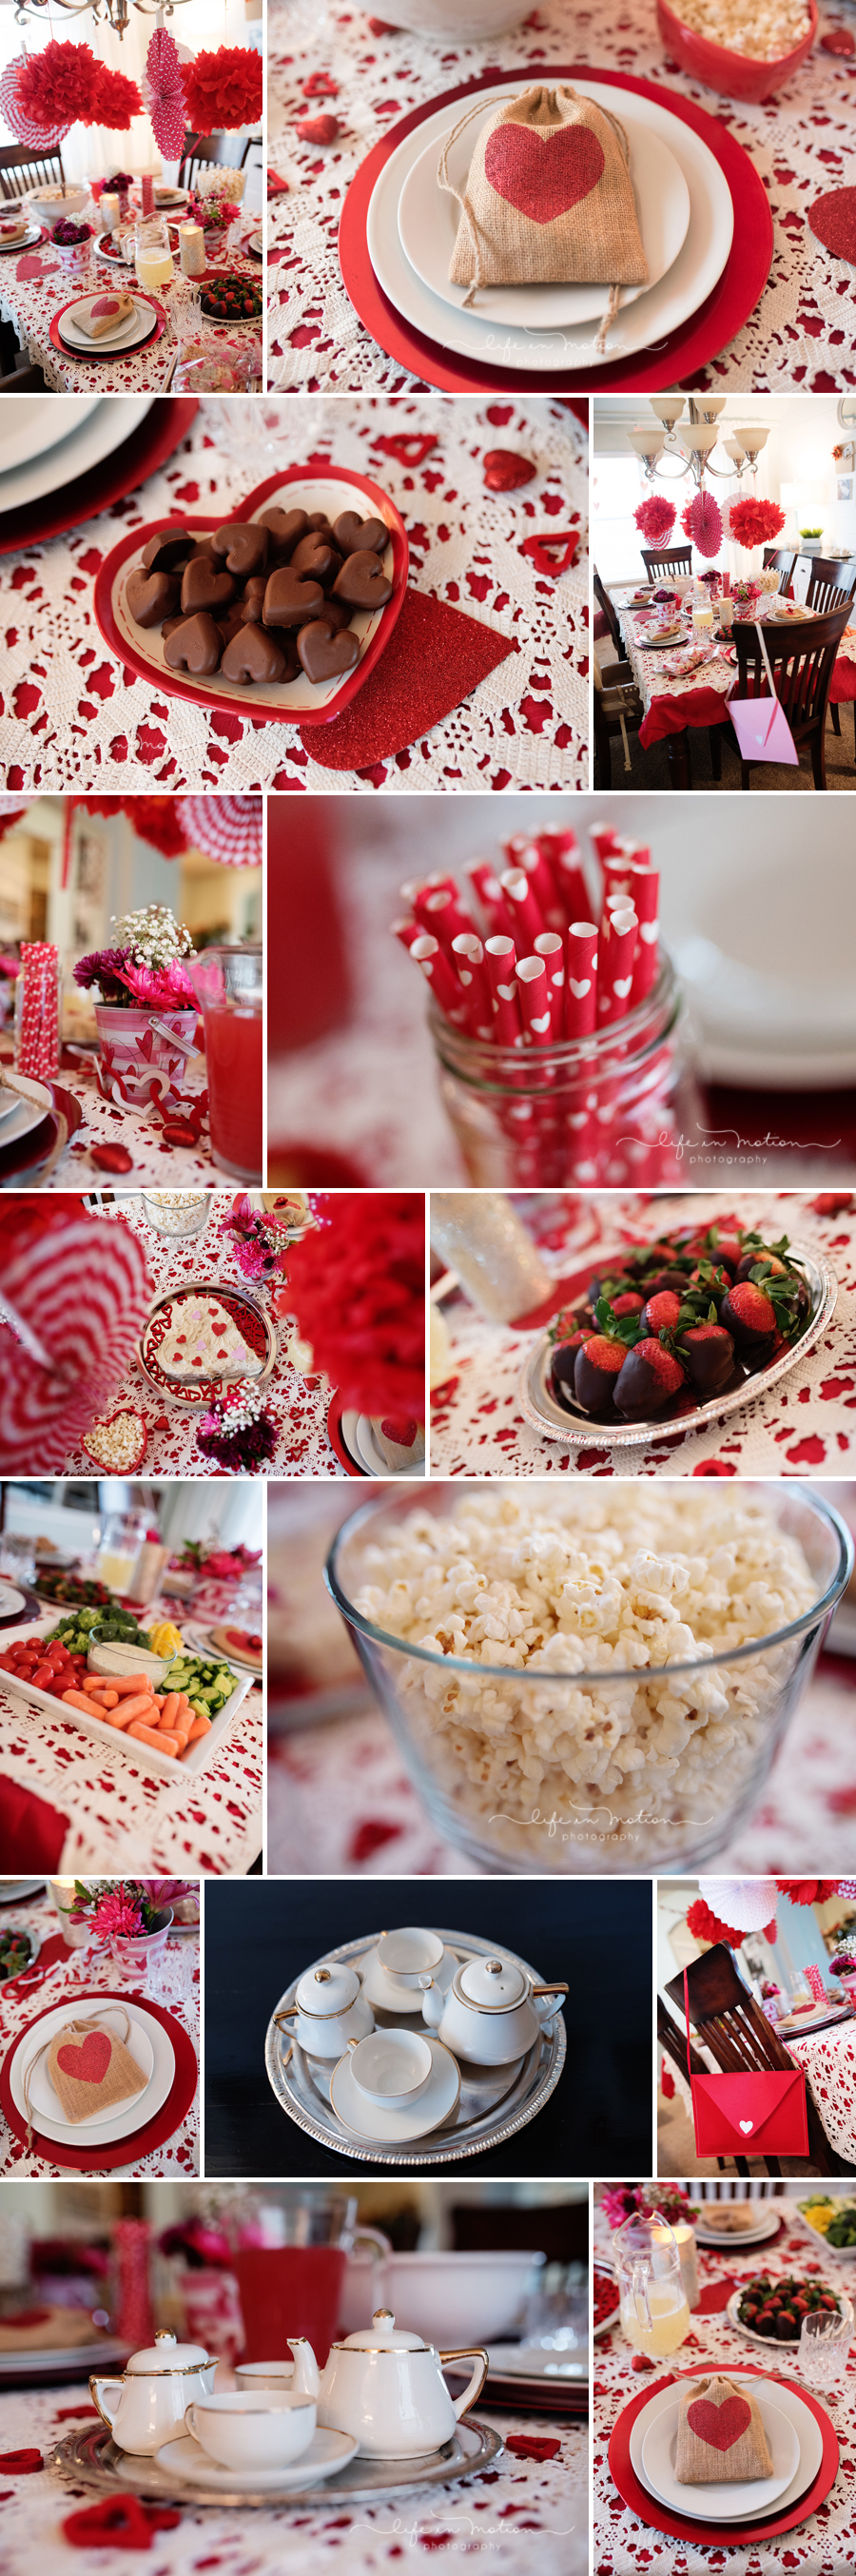 valentines_day_tea_party